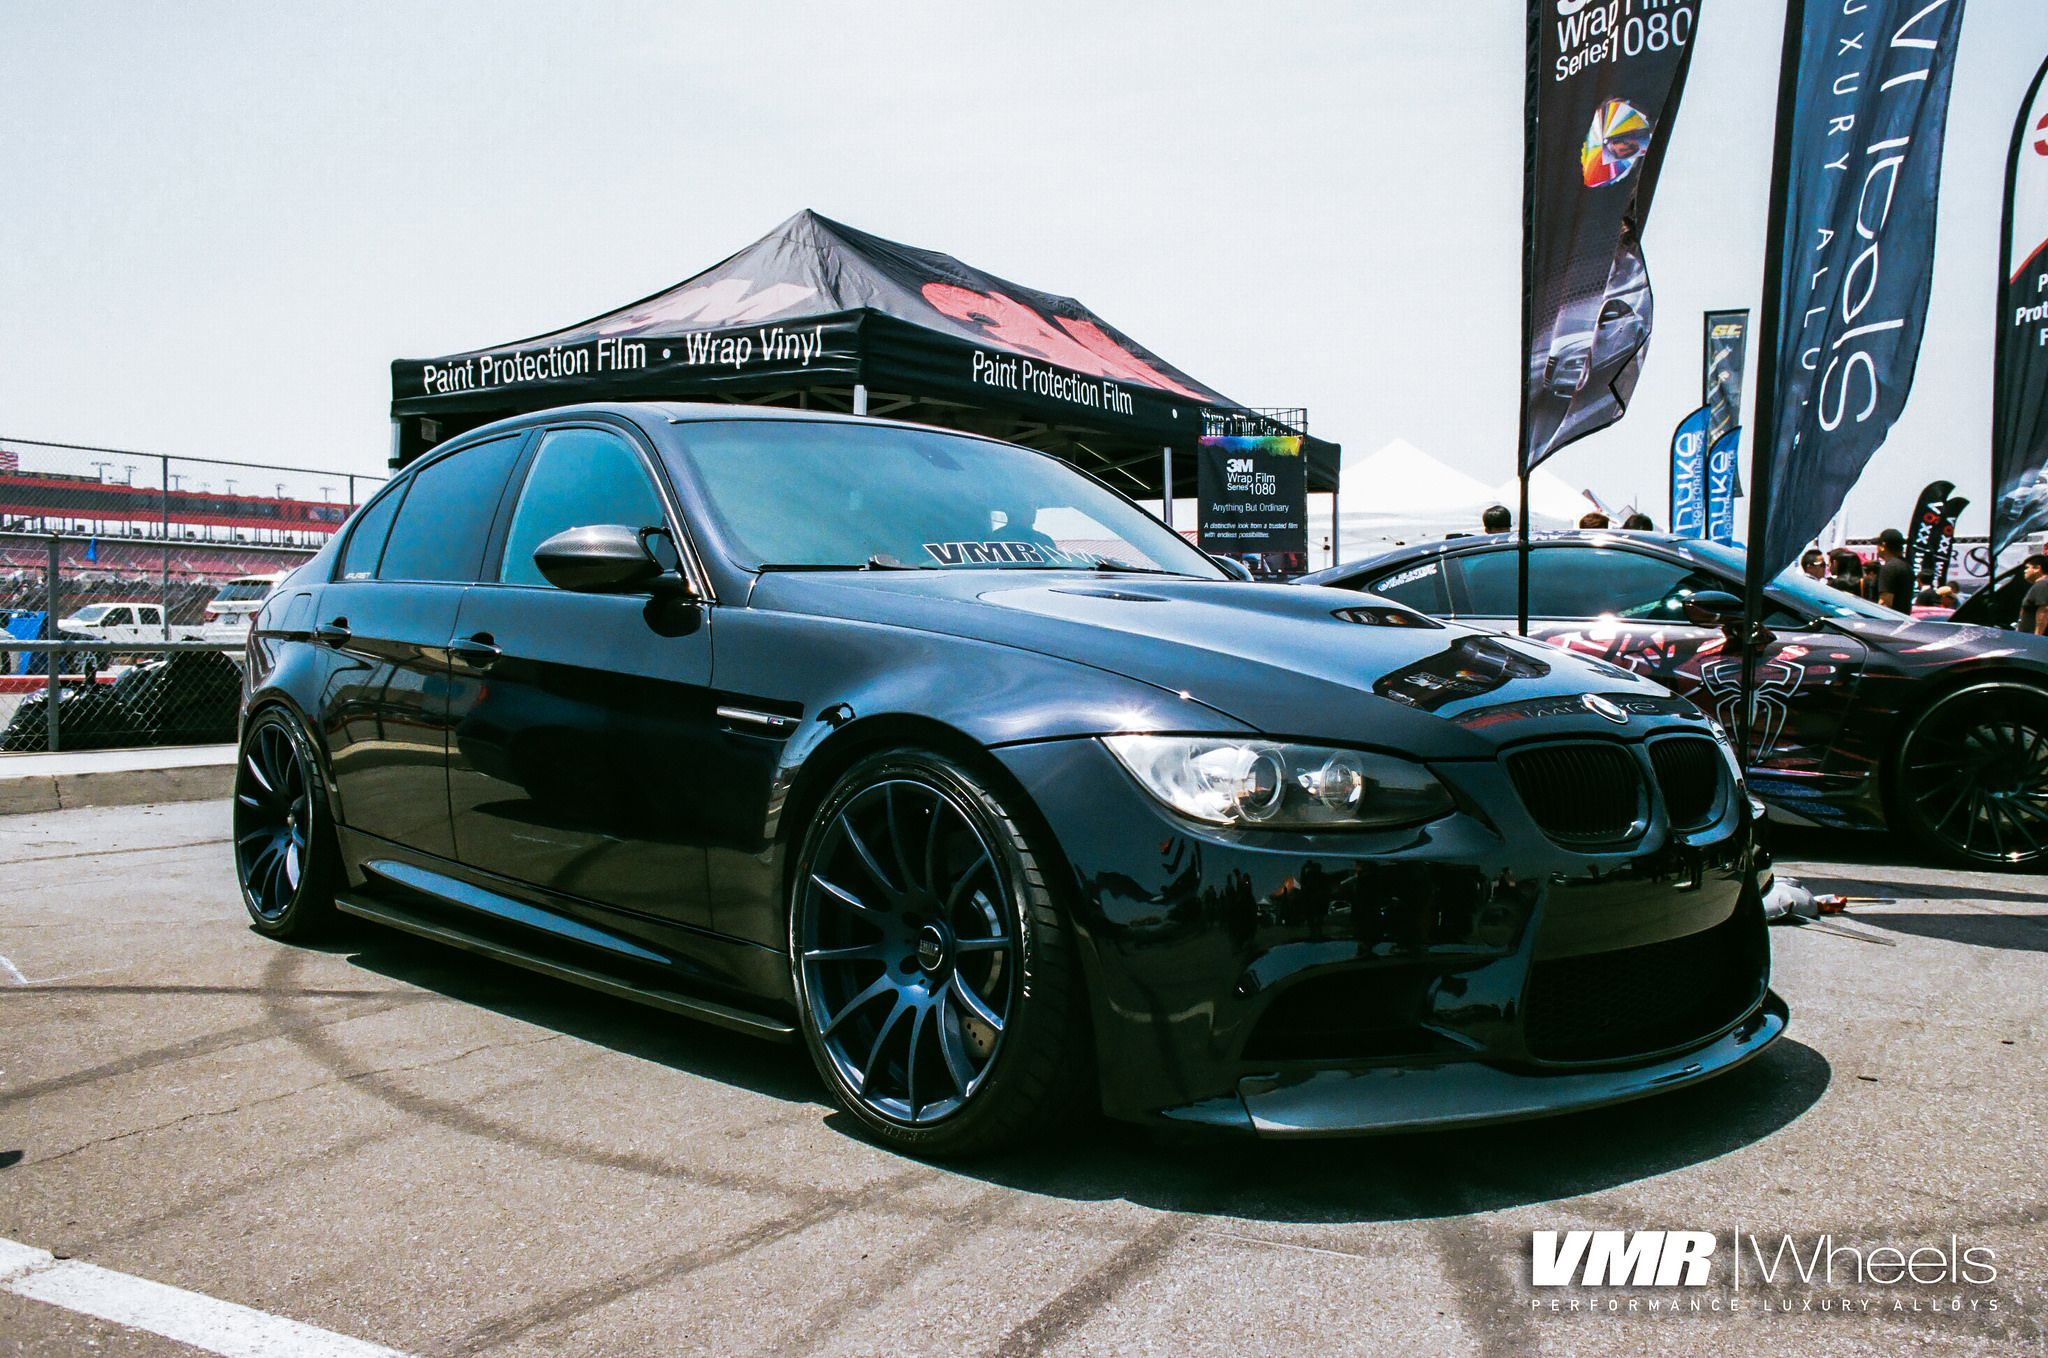 bmw e90 m3 sedan bimmerfest 2k16 vmrwheels tuning. Black Bedroom Furniture Sets. Home Design Ideas